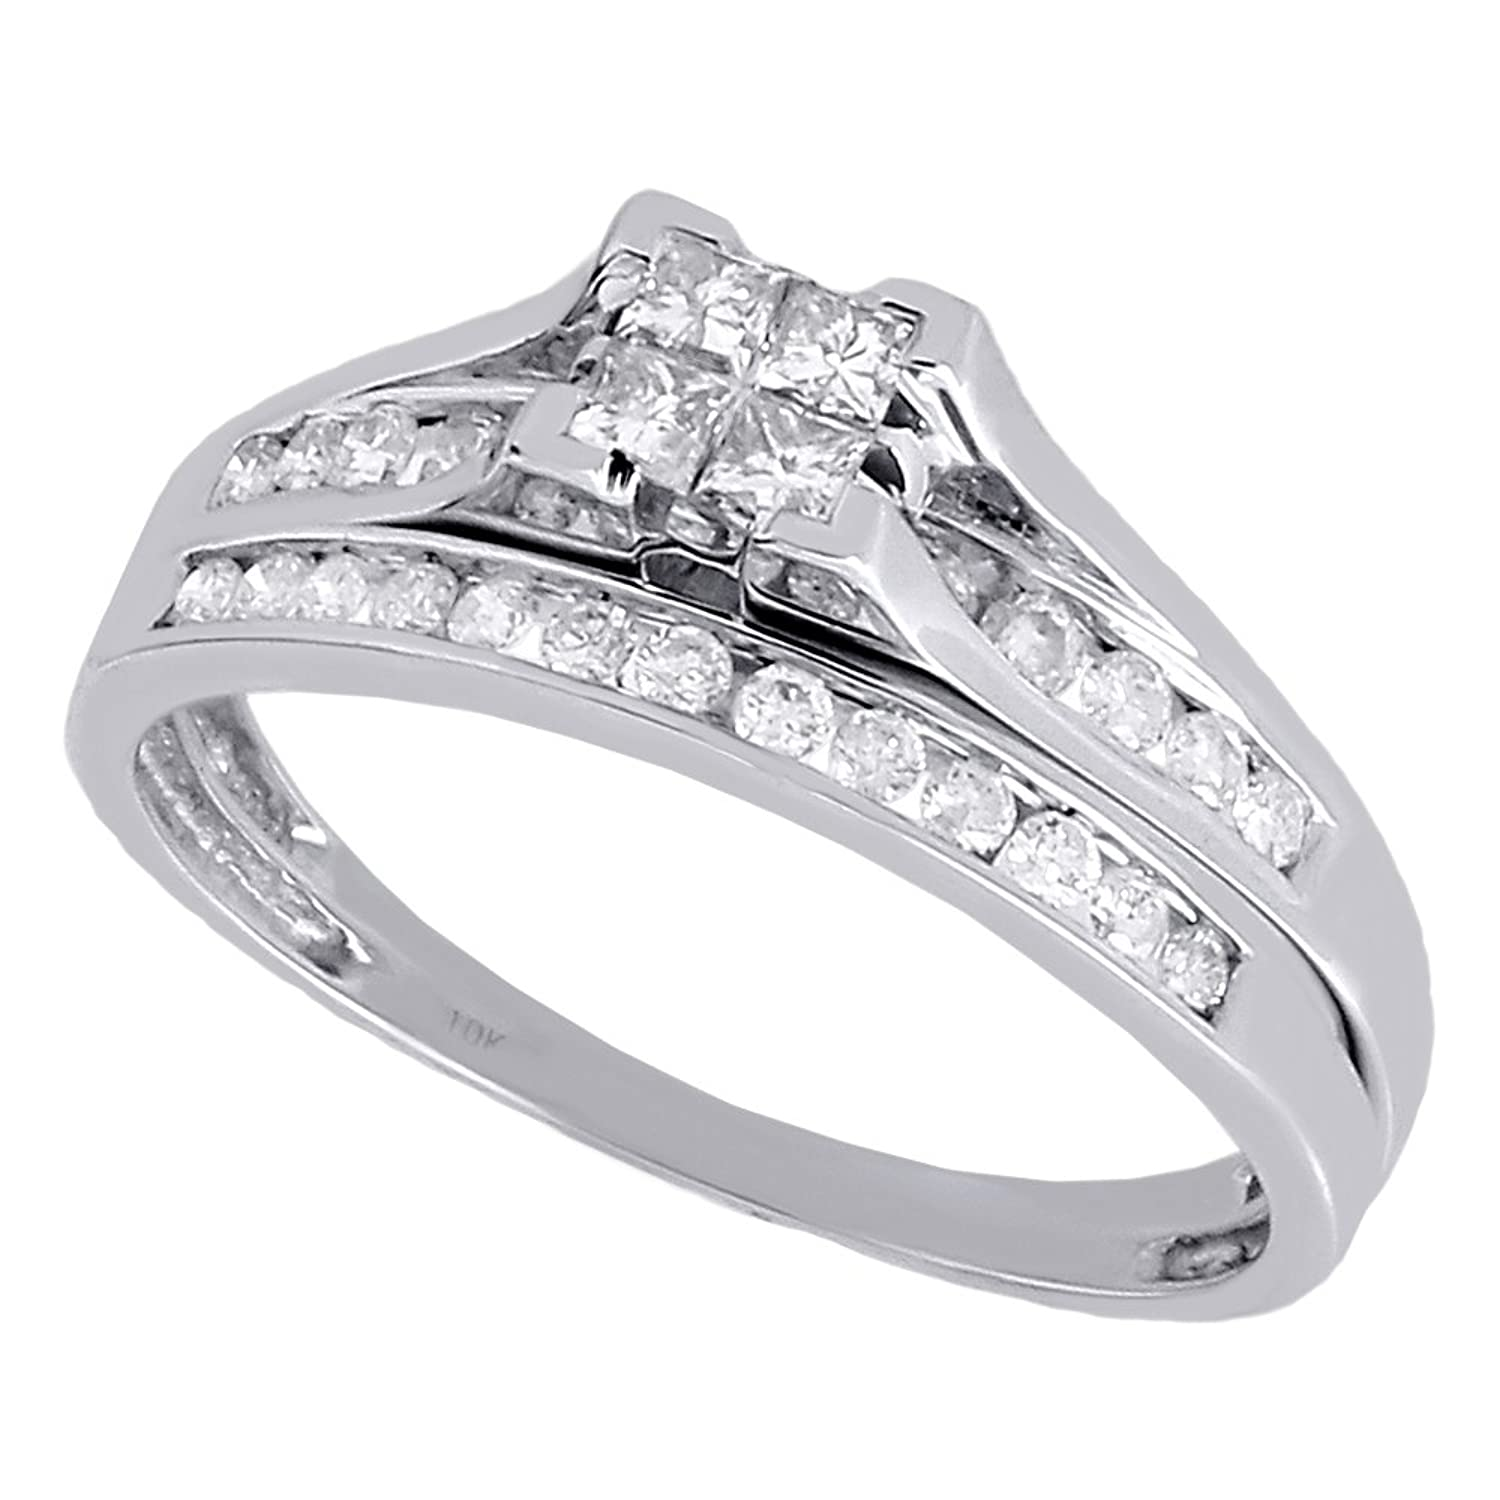 engagement diamond vendorafa st ring crossed rings louis c jewelry